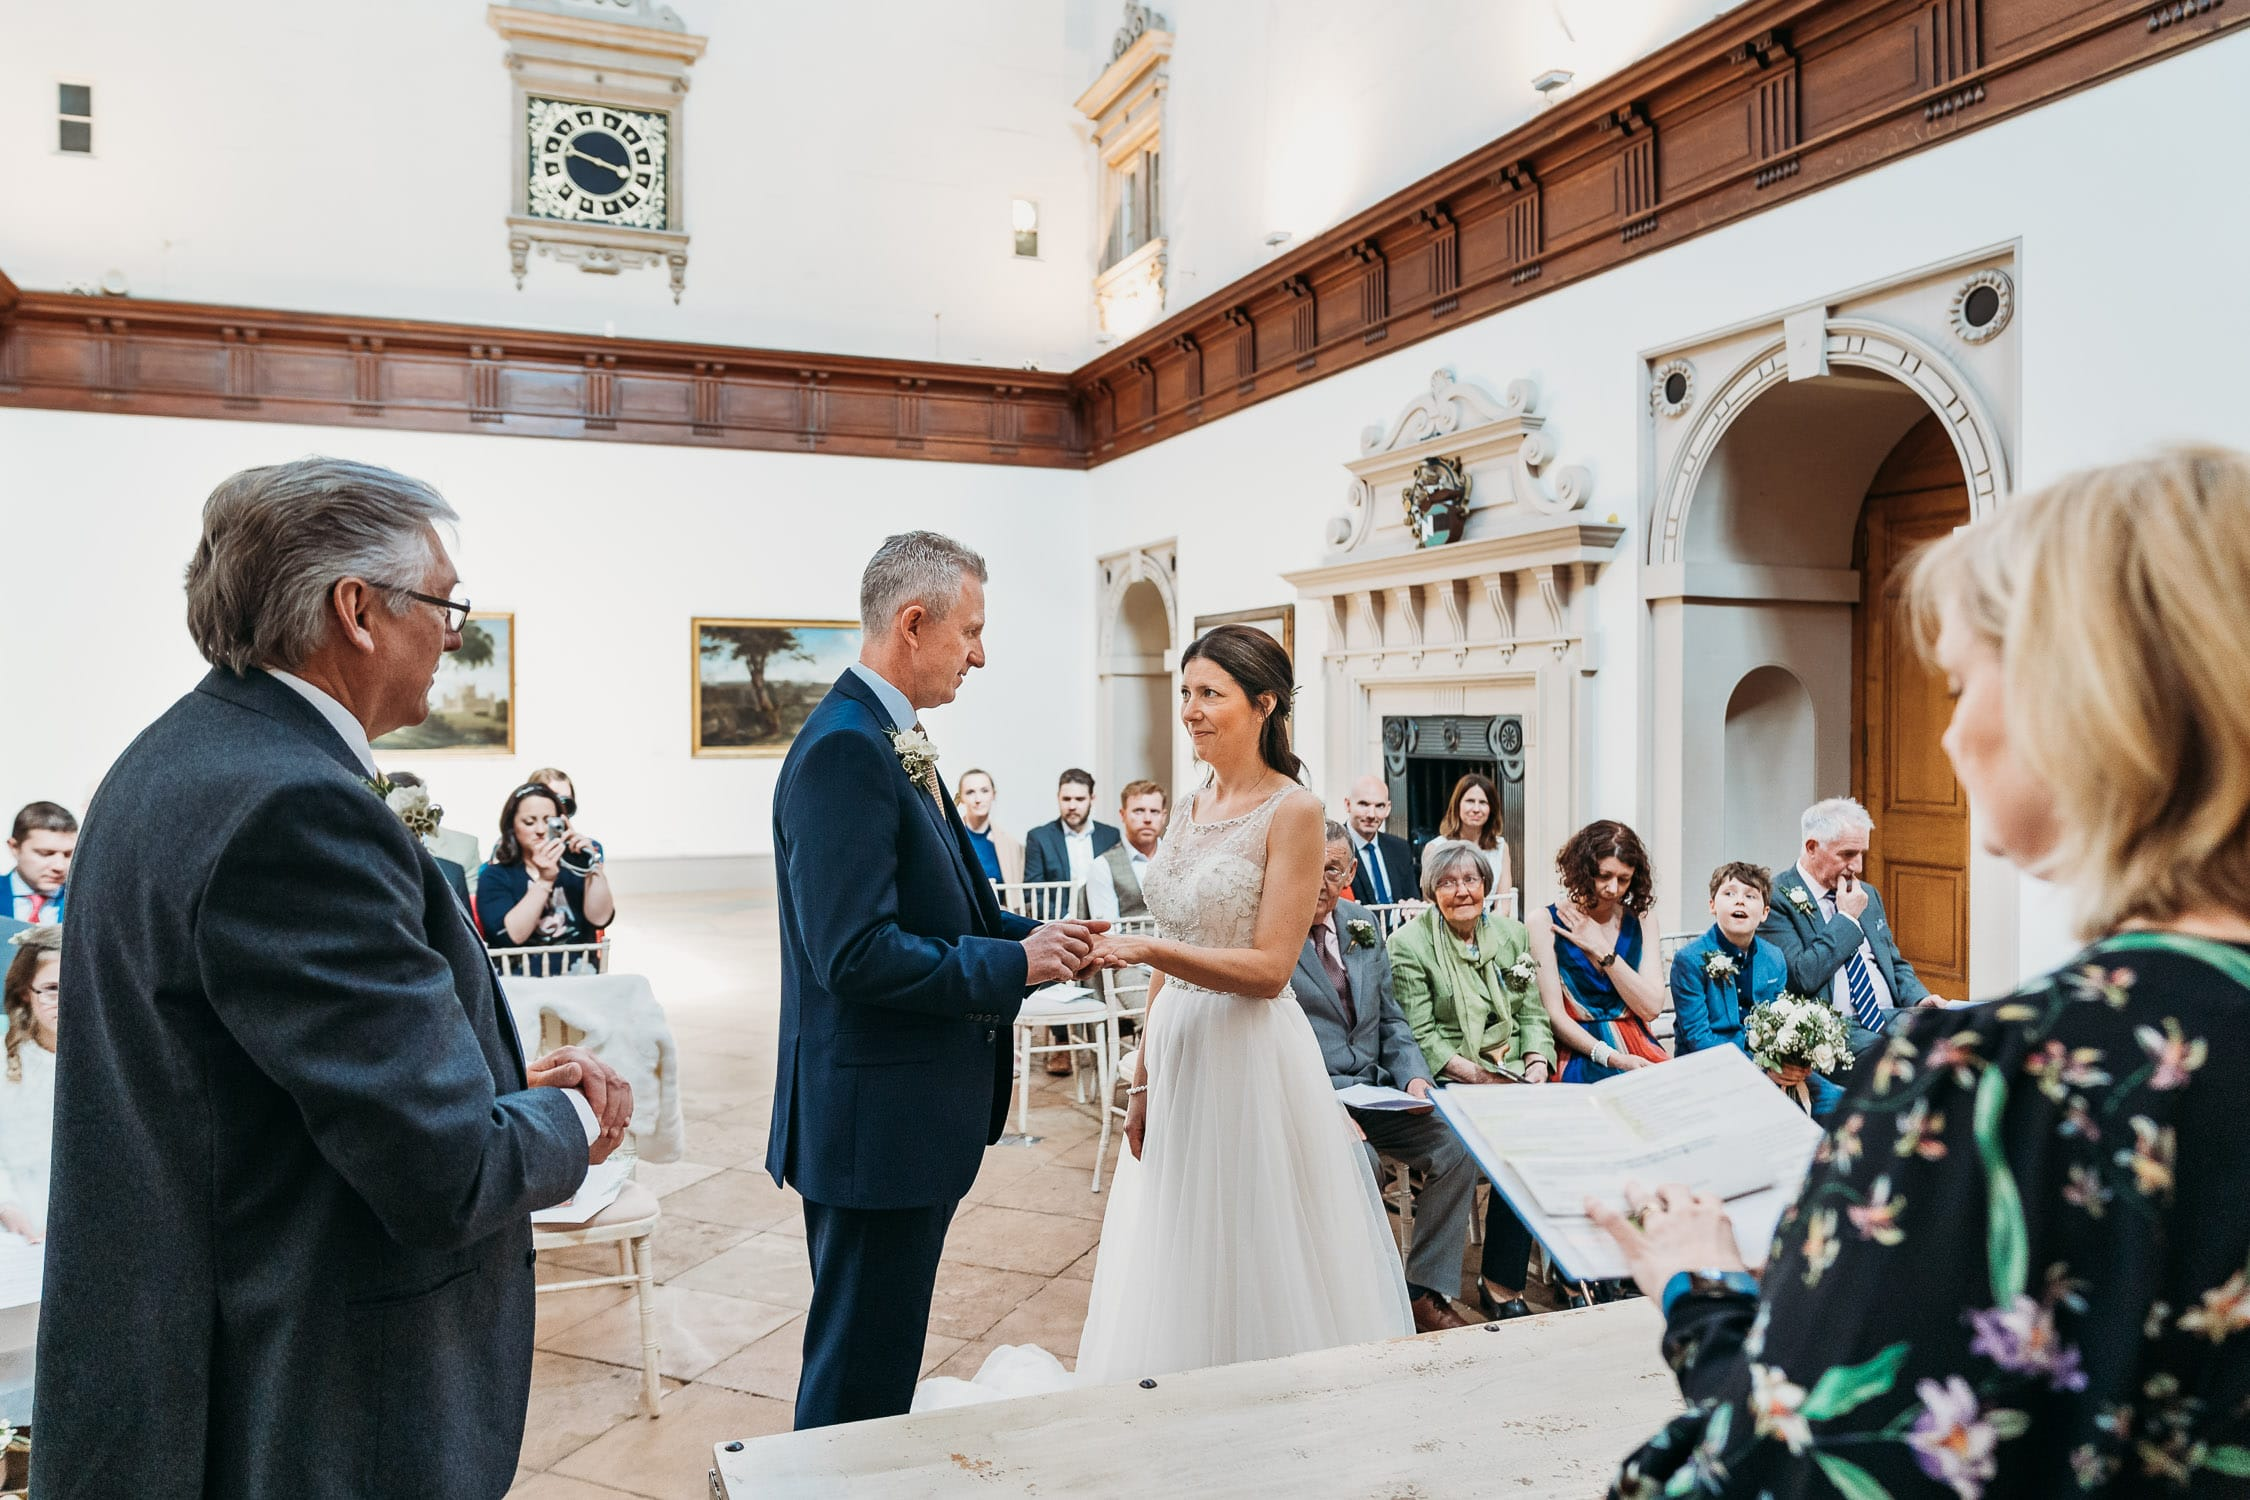 A photo of Bride and groom exchanging wedding rings during their wedding ceremony in the grand hall at Wollaton Hall Nottingham